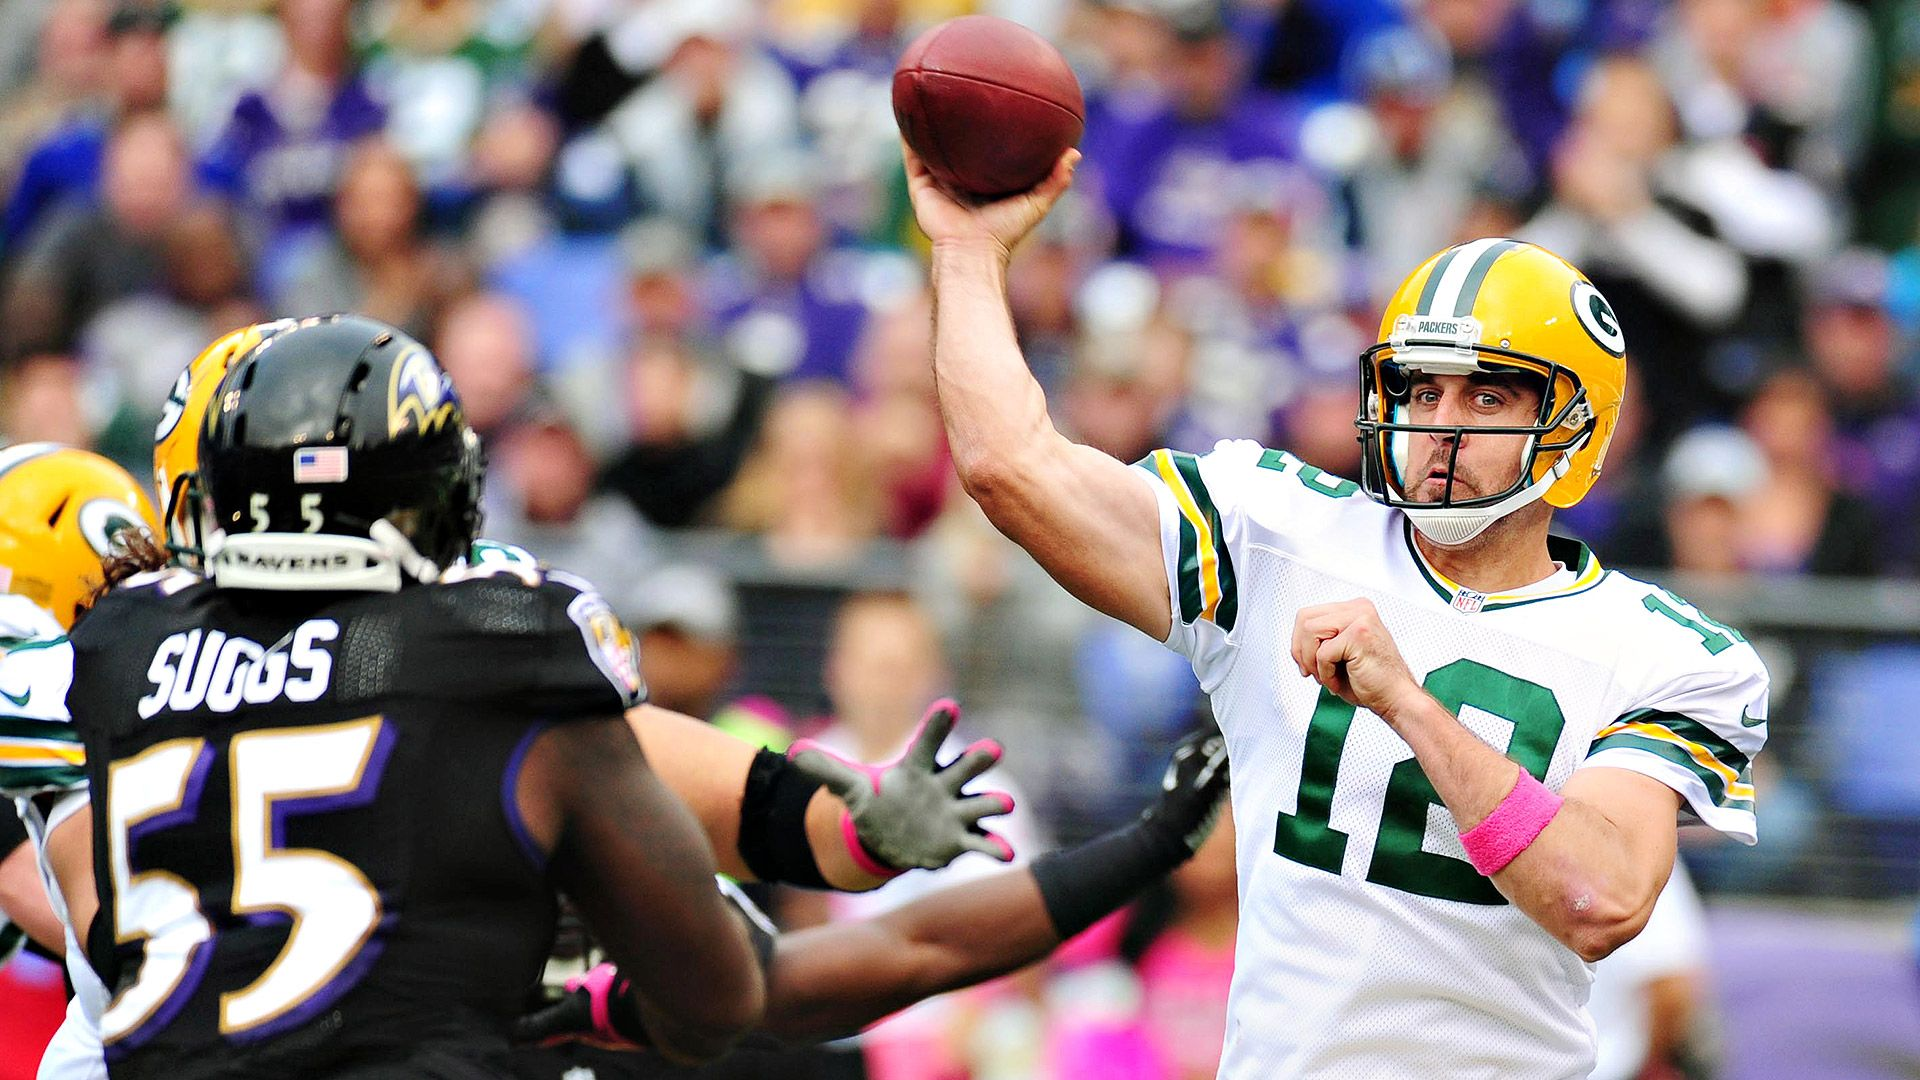 Green Bay Packers quarterback Aaron Rodgers discusses offseason rest, training for arm